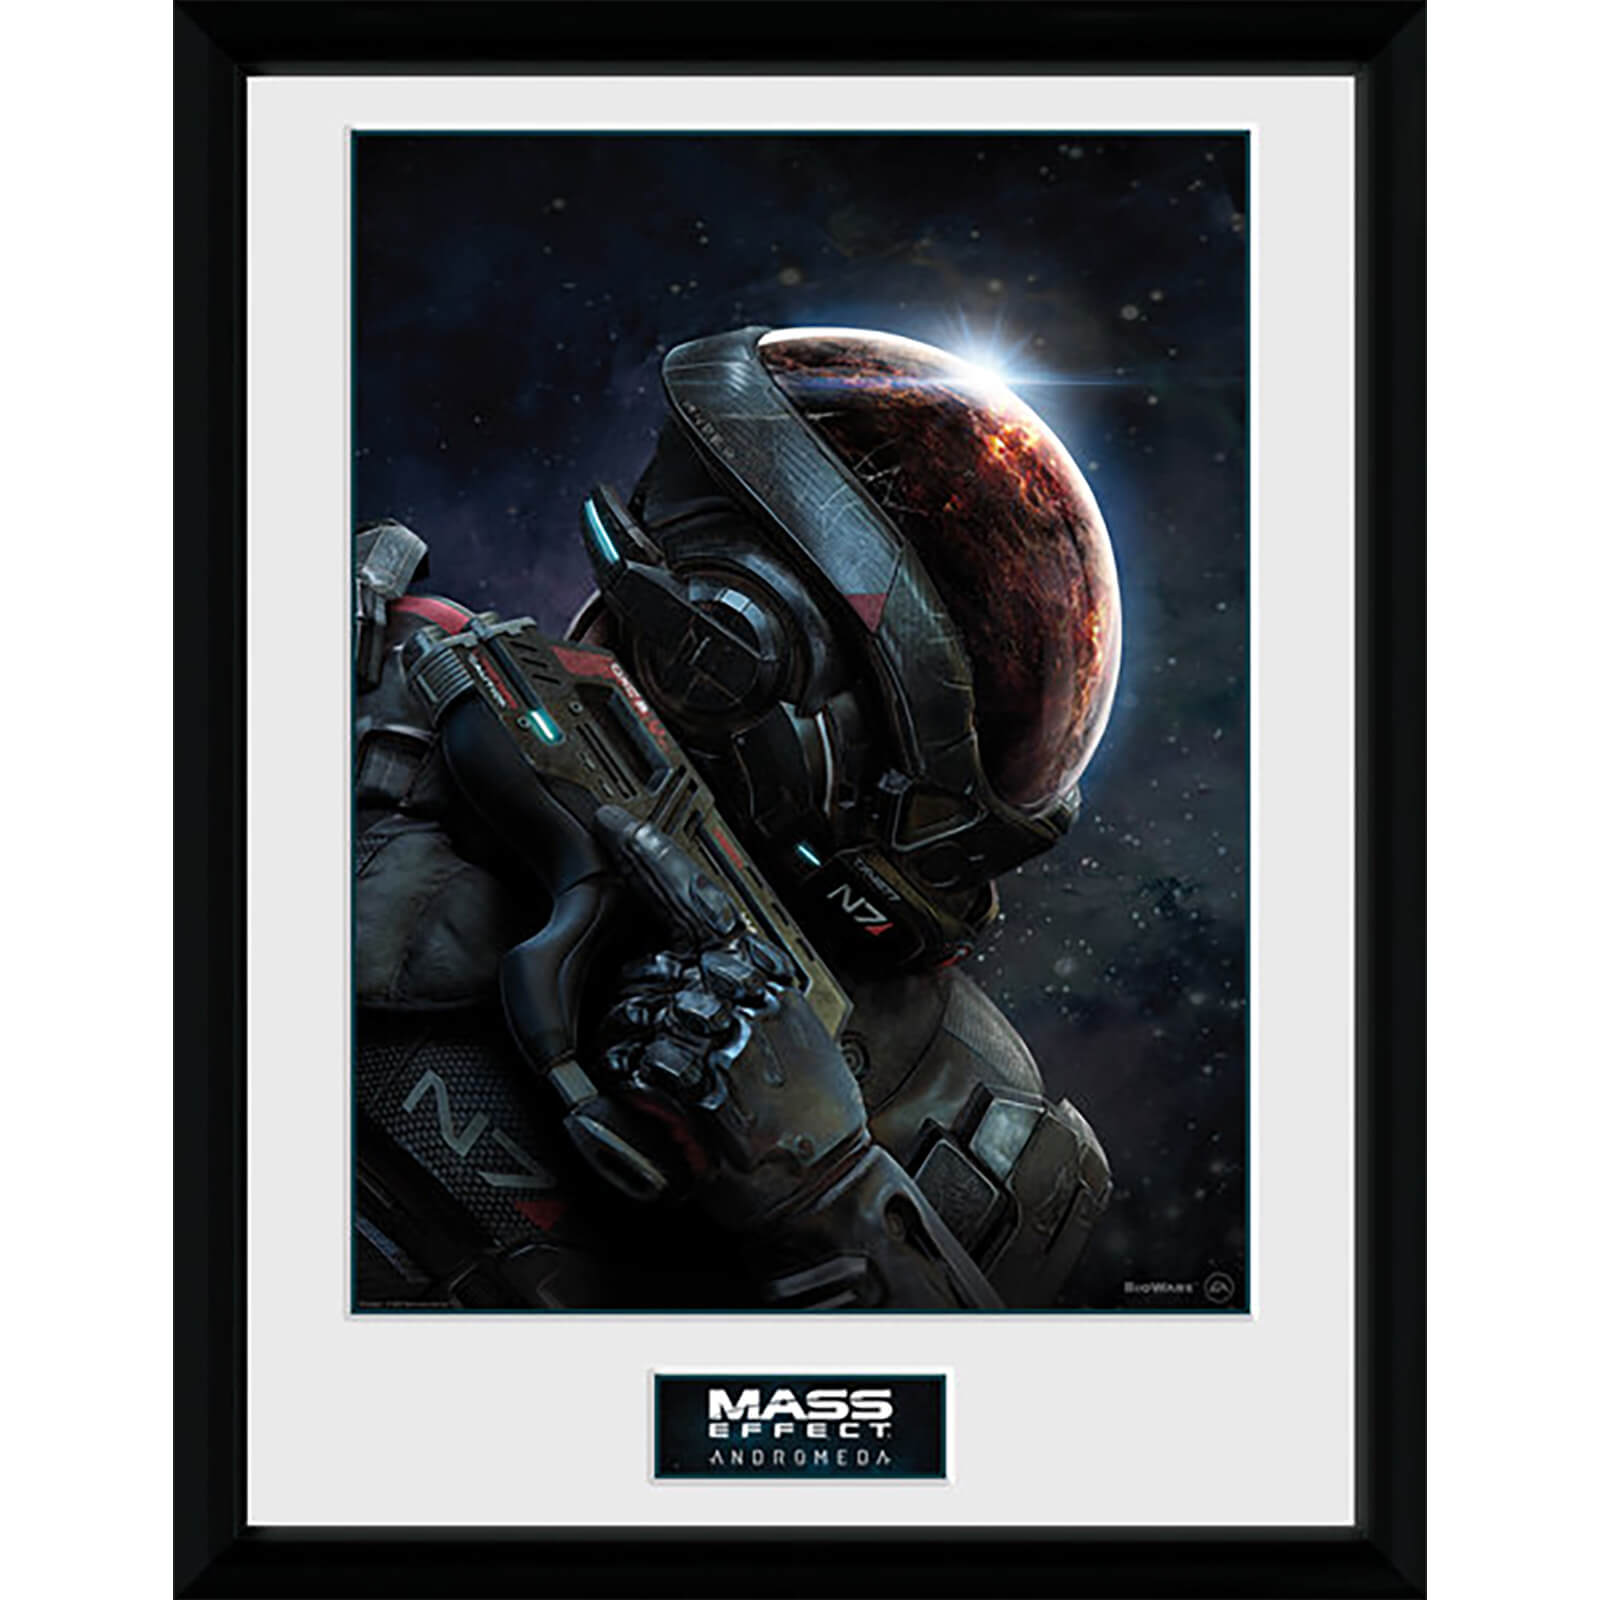 Mass Effect: Andromeda Key Art - 16 x 12 Inches Framed Photograph